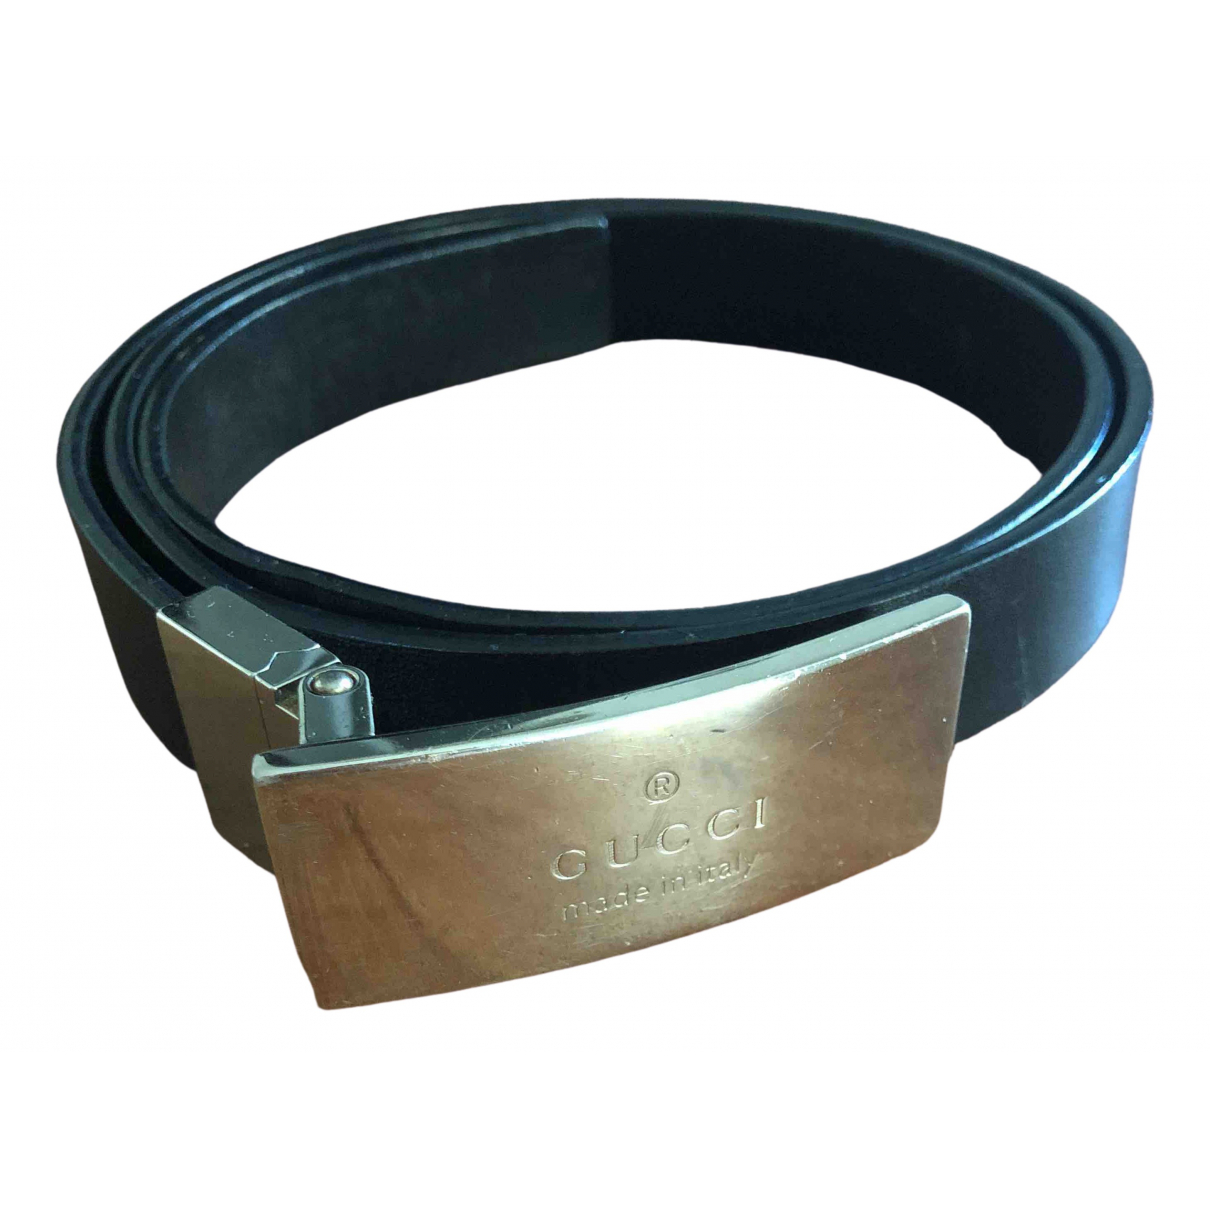 Gucci \N Black Leather belt for Women 75 cm